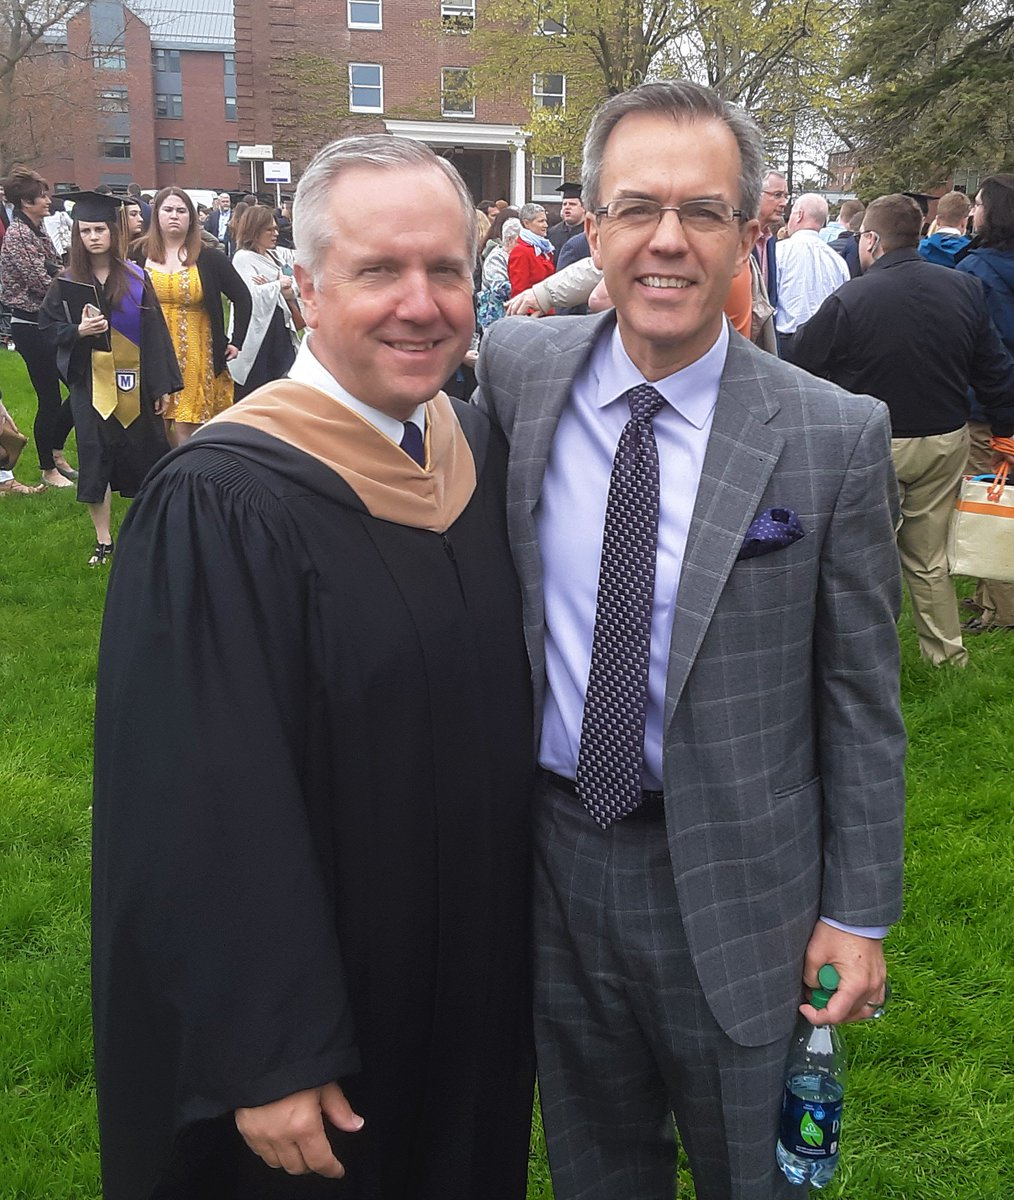 Just a couple of former @smcathletics Sports Information work-study students catching up at @saintmichaels Commencement - congratulations to Jack '19 and the Caron family! #JacksBigDay #Legacy #KnightsR4Ever #smcvtalumni